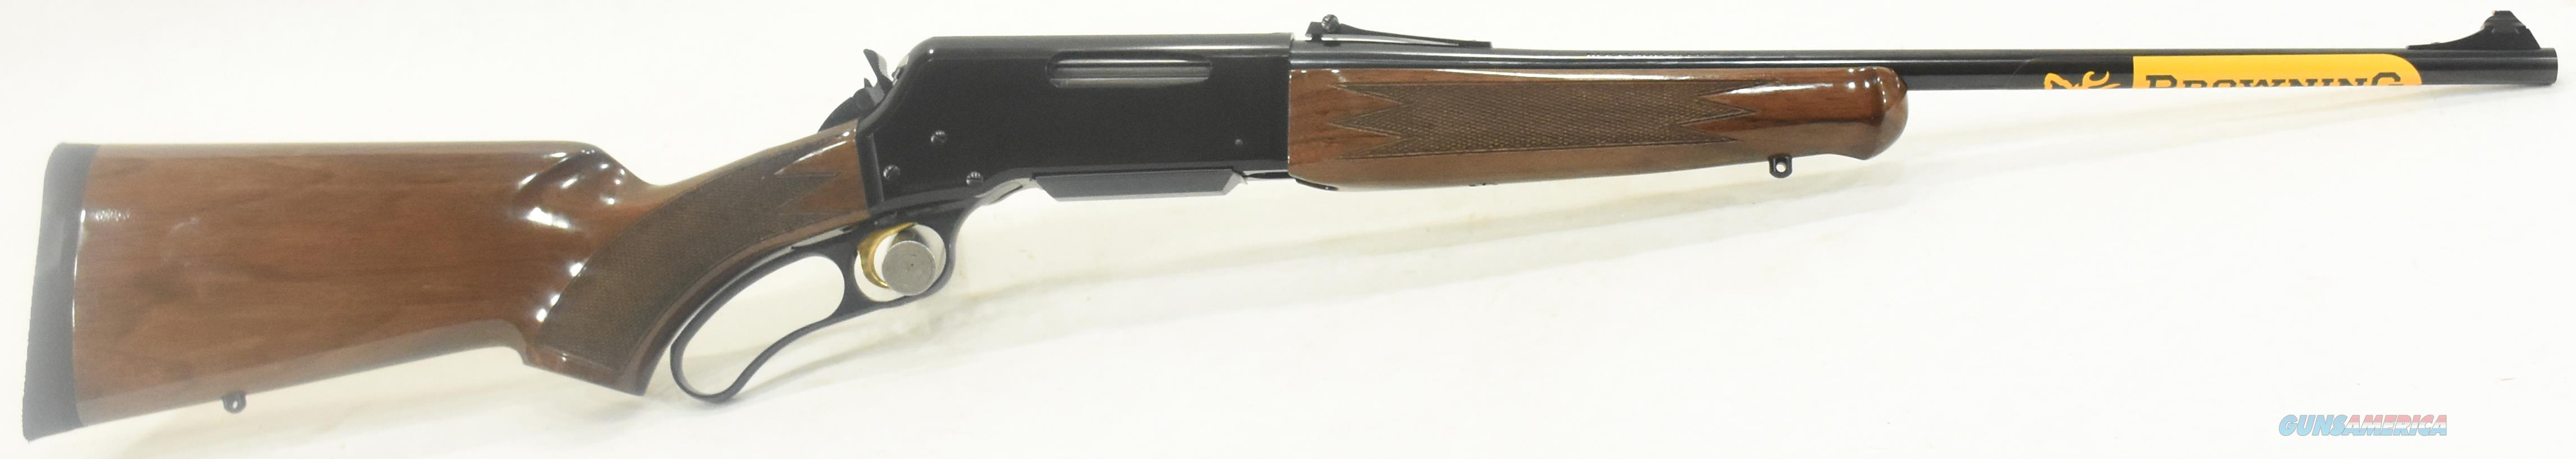 BLR LTWT Walnut PG 308Win 20In  034009118  Guns > Rifles > Browning Rifles > Semi Auto > Hunting